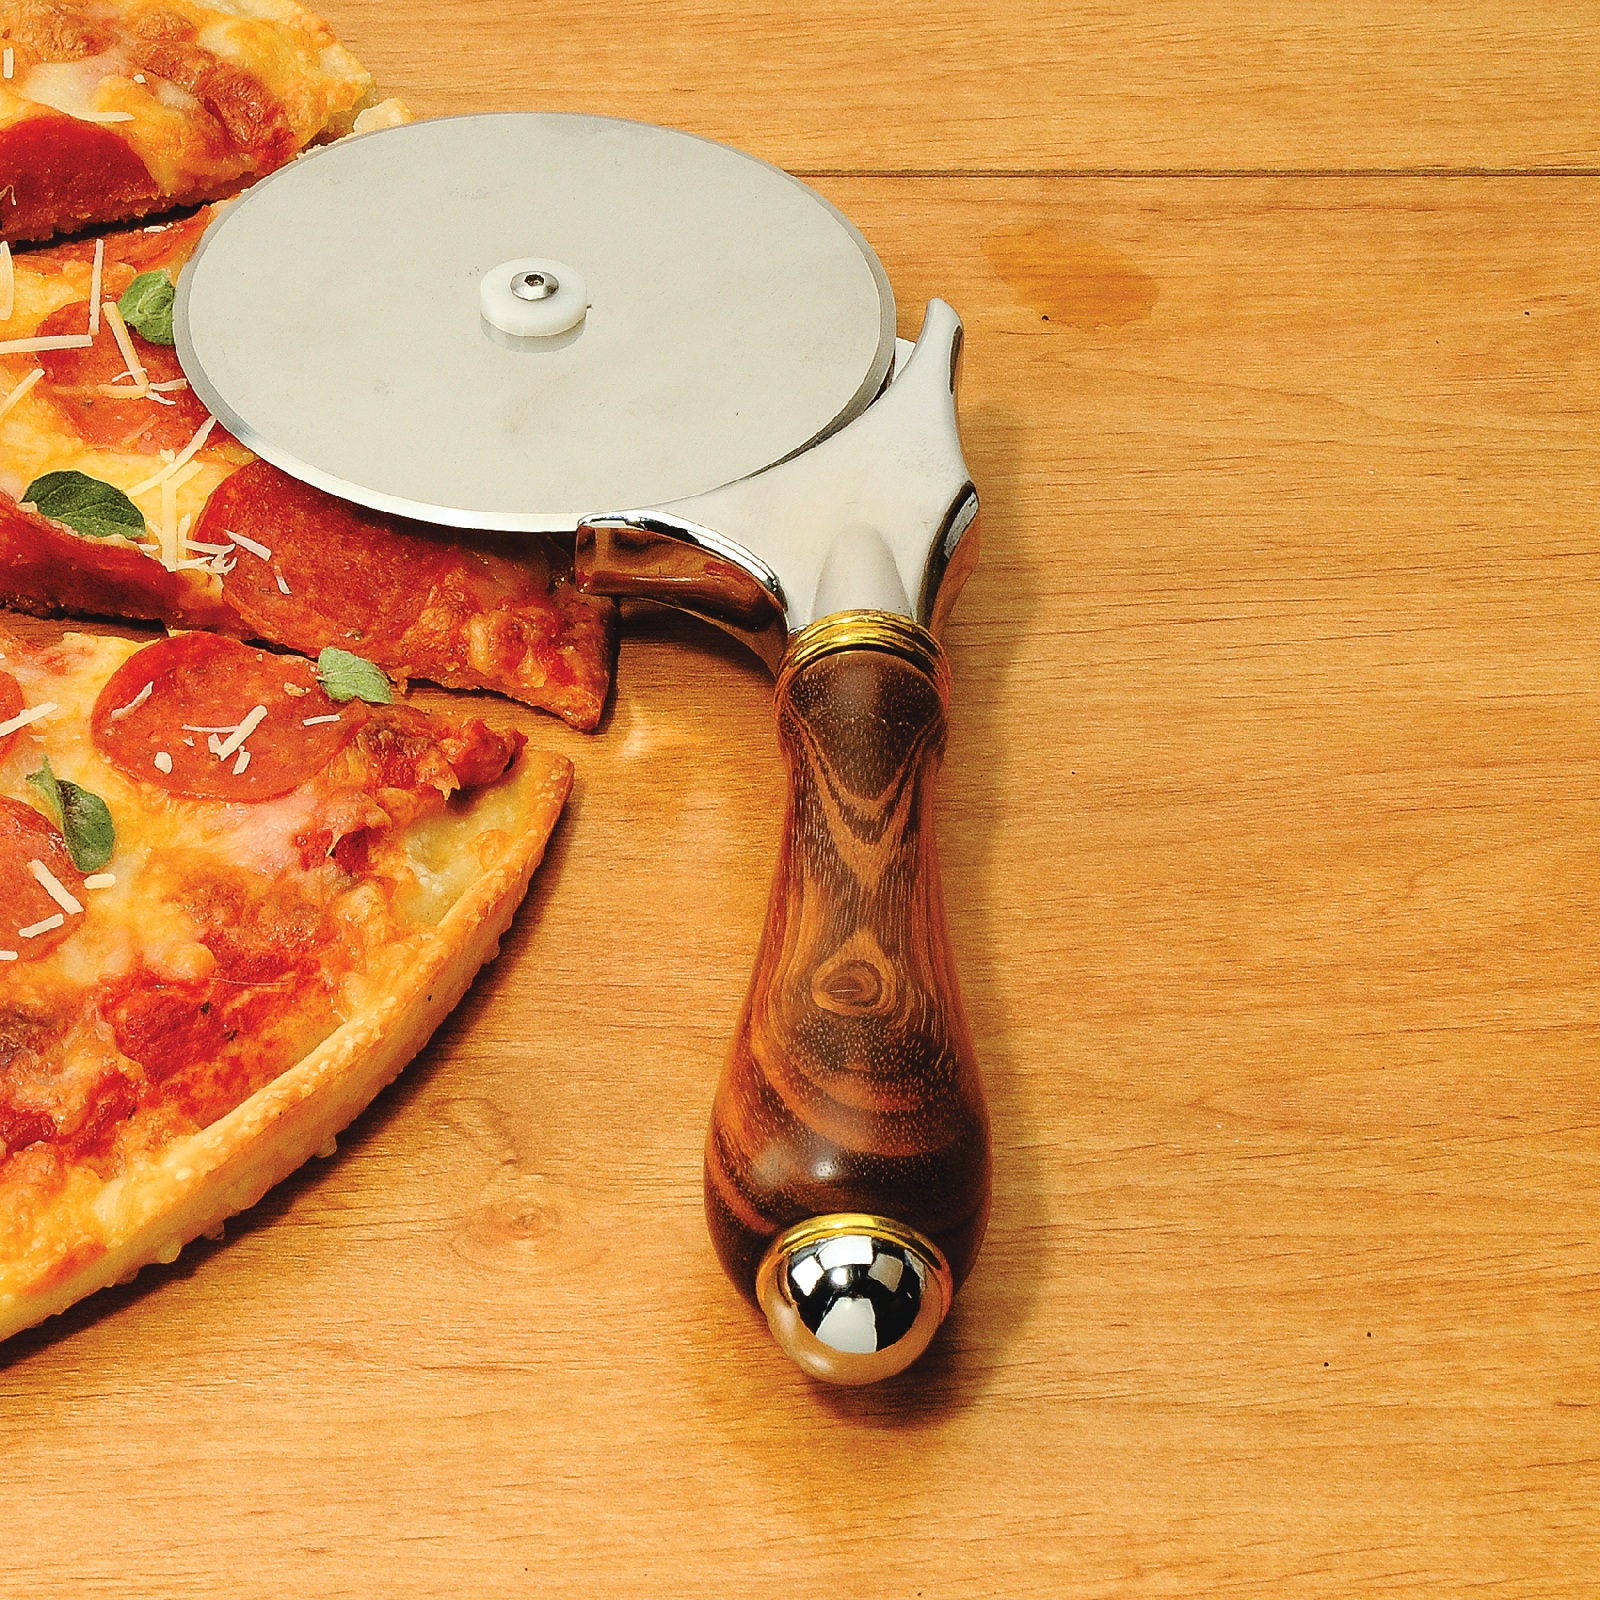 Pizza Cutter Kits at Penn State Industries